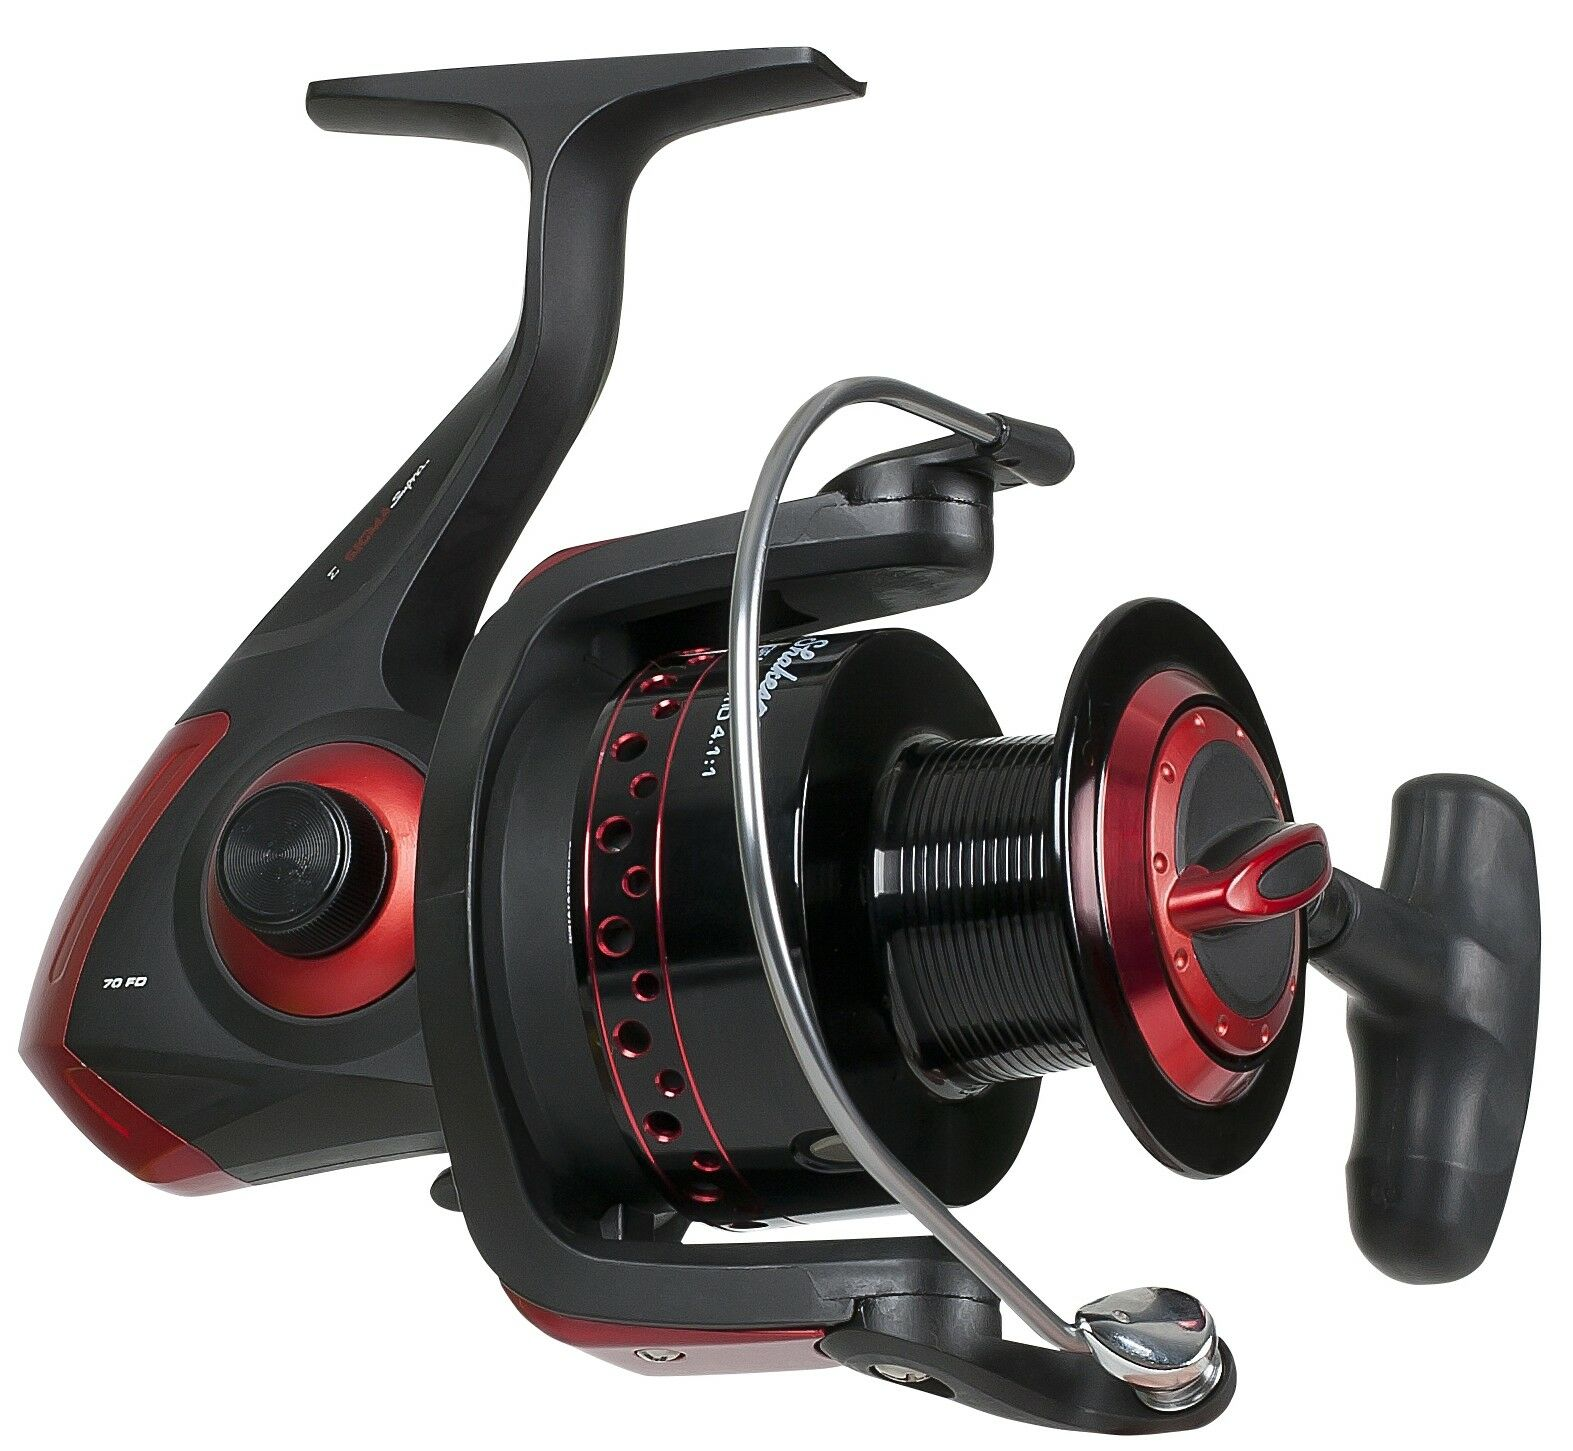 Shakespeare Sigma Supra 40FD - 50 FD Front Drag Spinning Fishing Reels